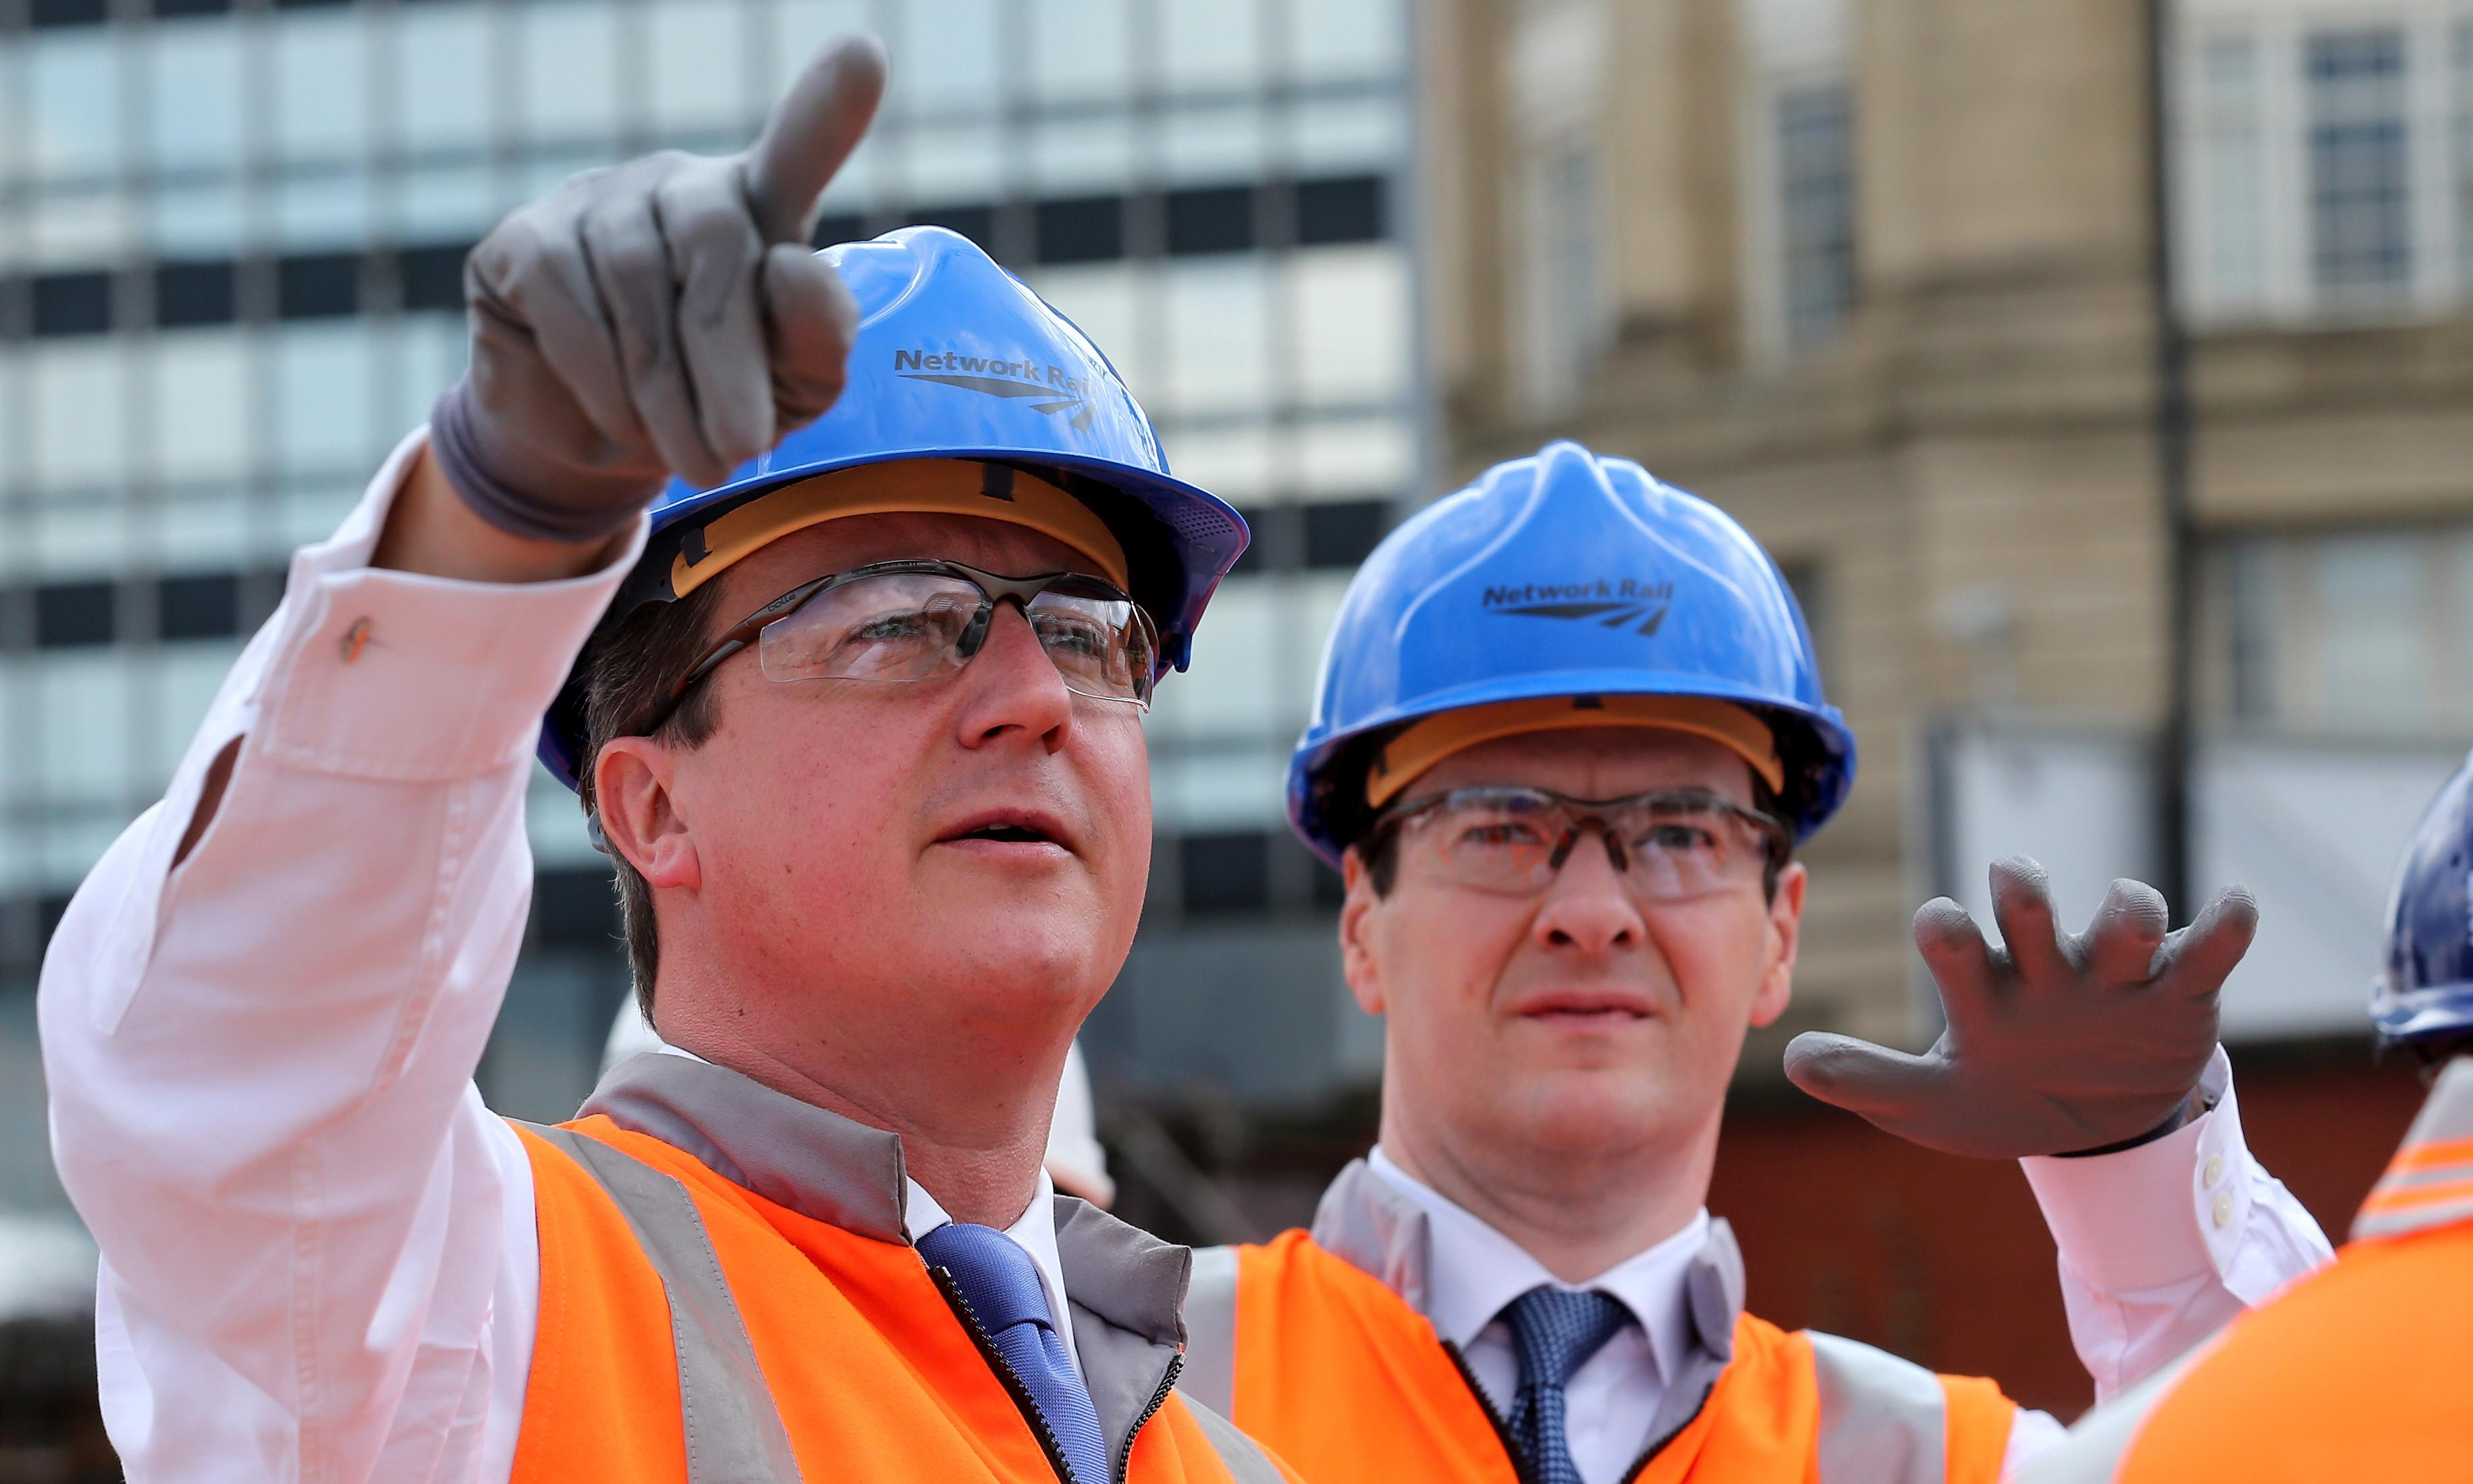 What has the 'northern powerhouse' actually done for the people of the north?